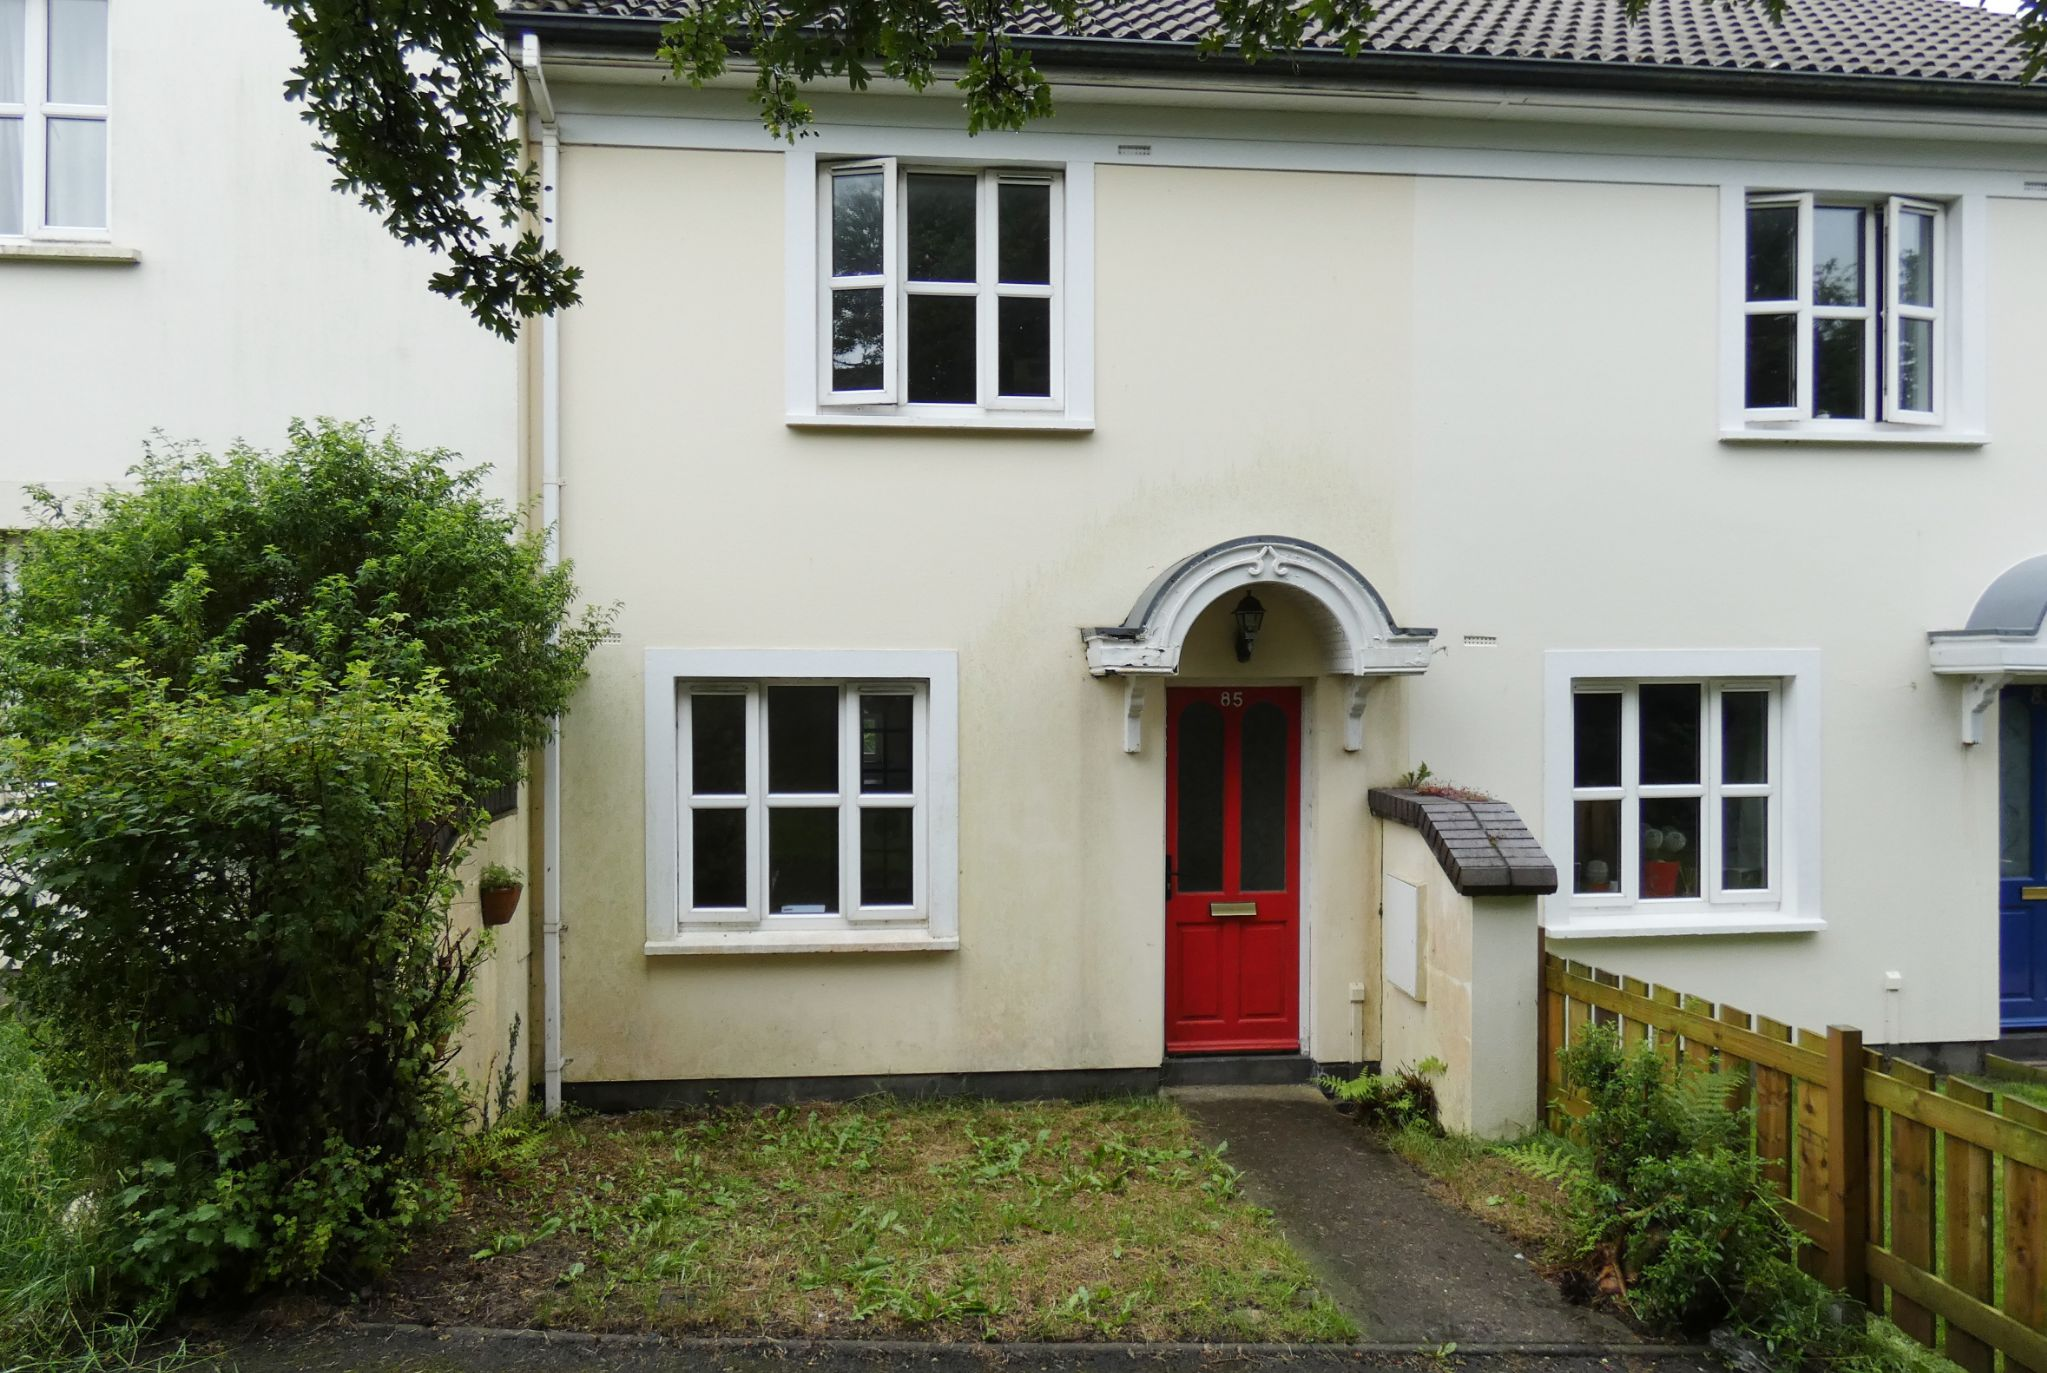 2 bedroom mid terraced house SSTC in Douglas - Photograph 1